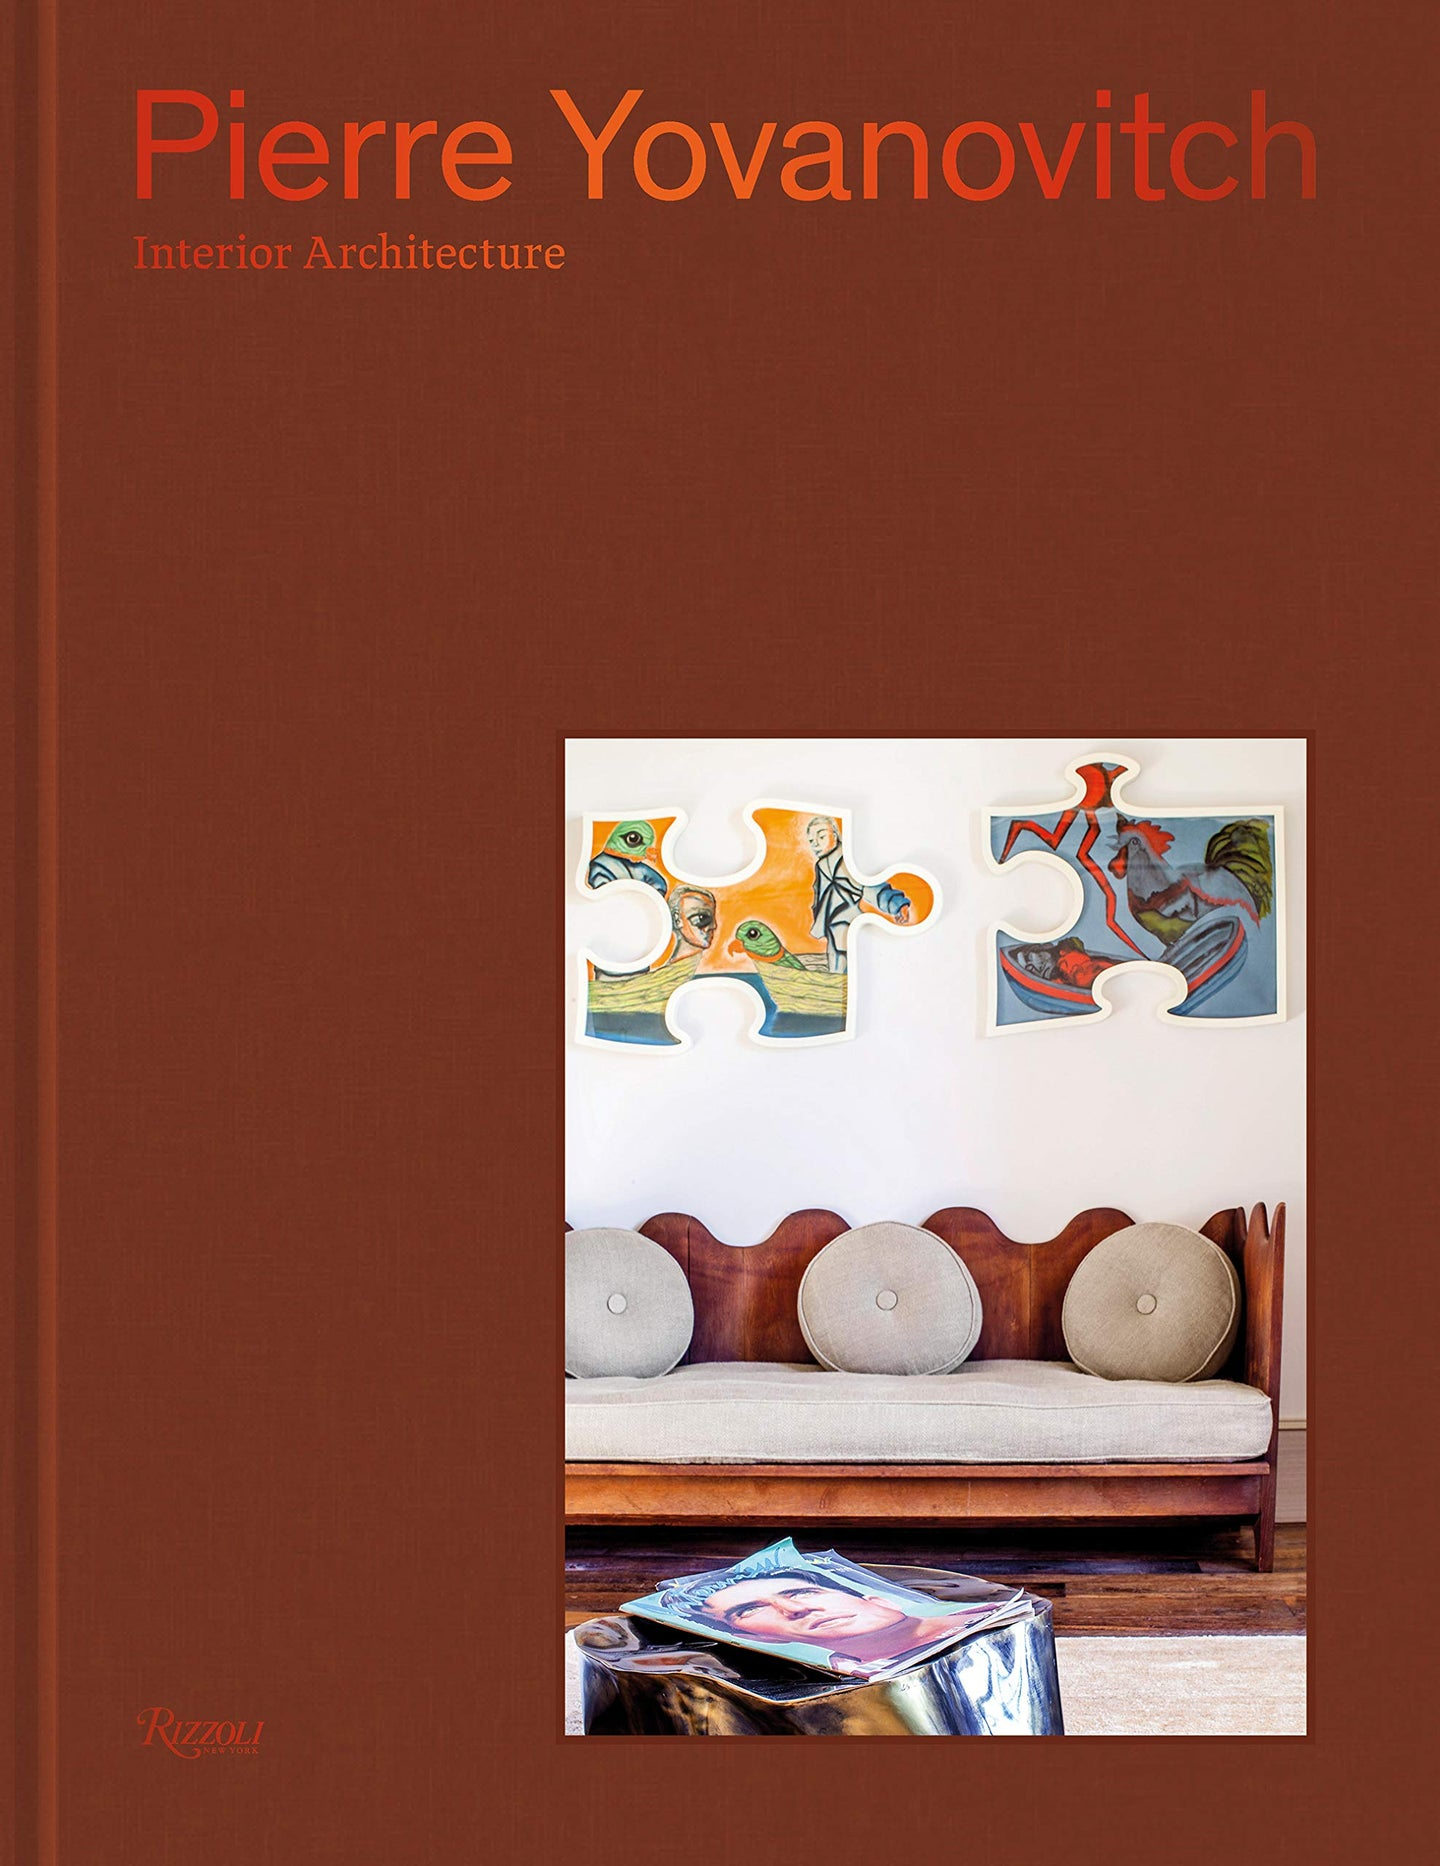 Pierre Yovanovitch: Interior Architecture - Pierre Yovanovitch